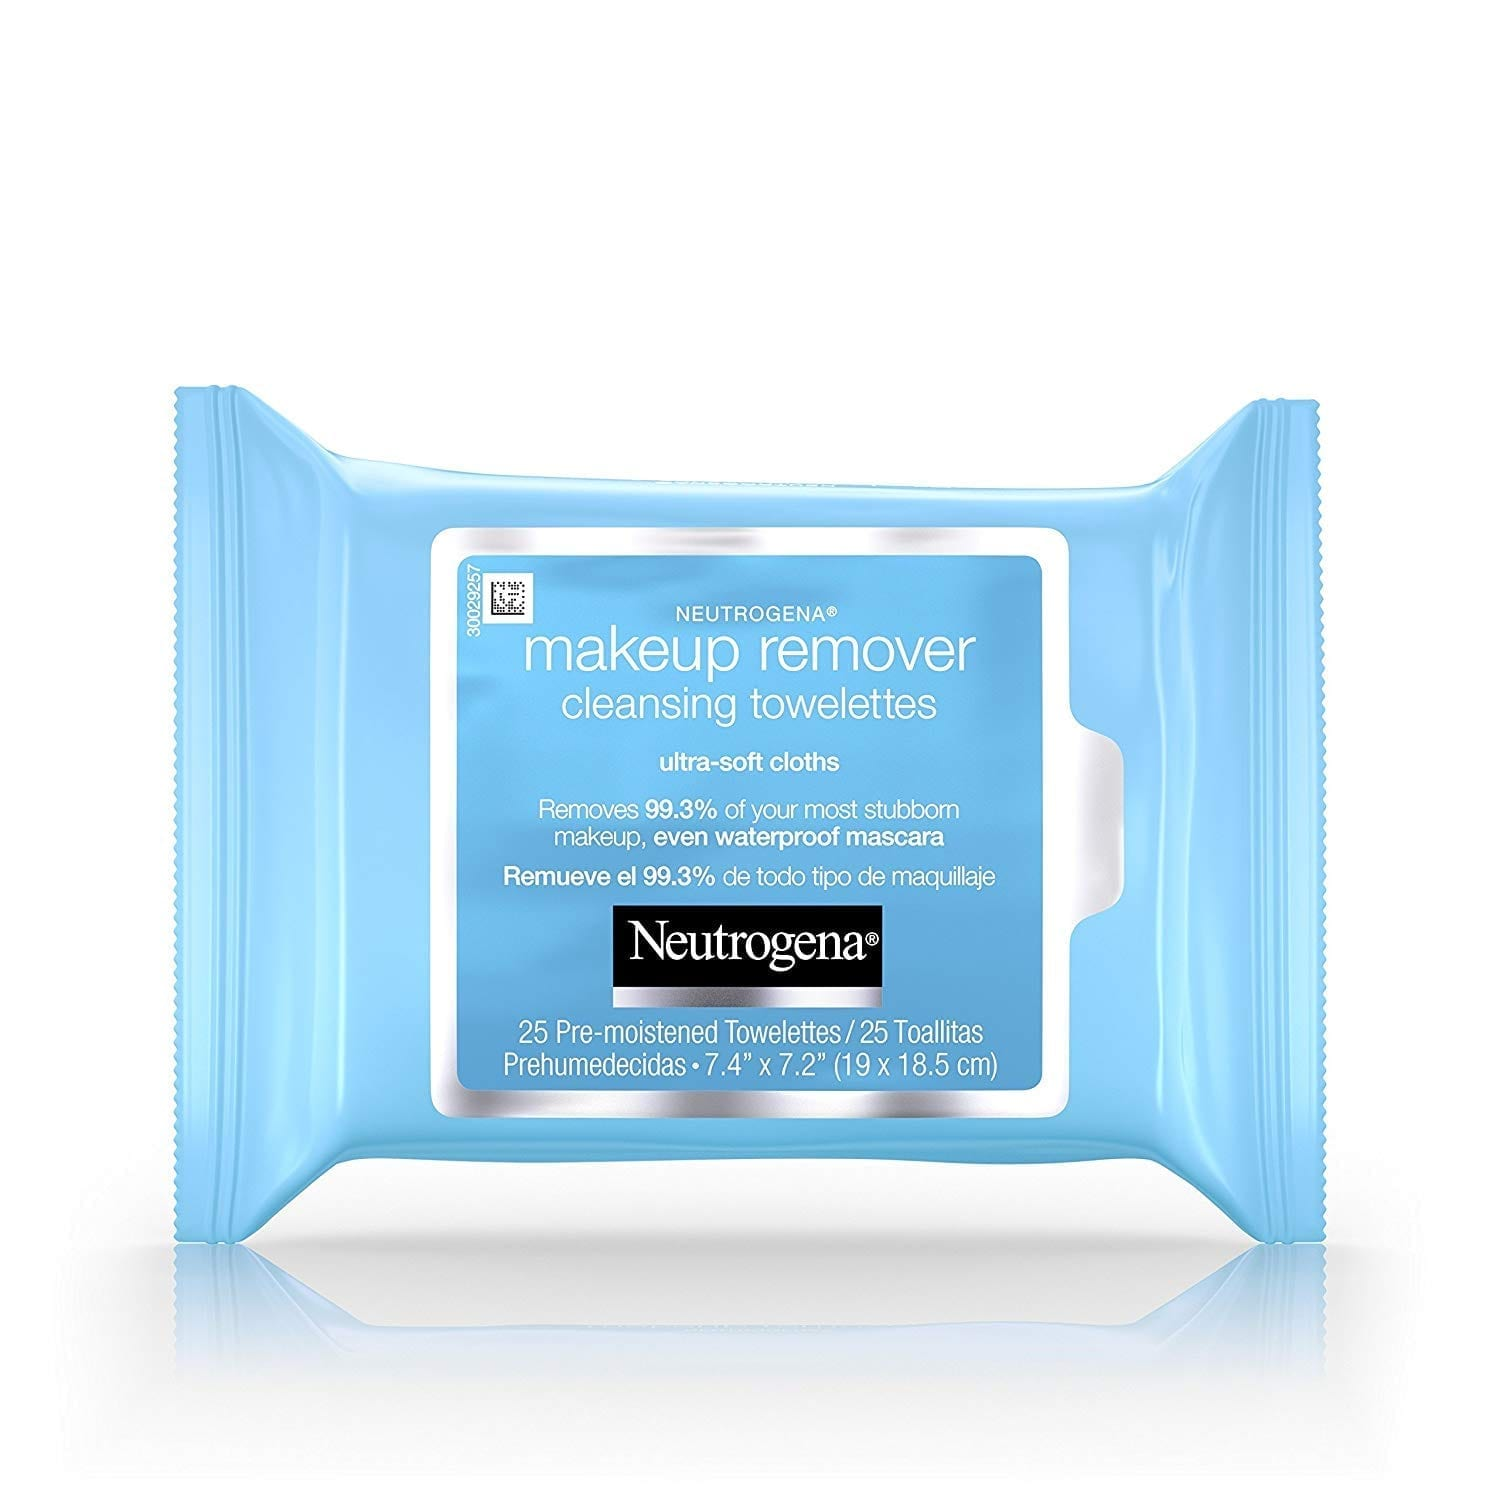 Neutrogena Makeup Remover Cleansing Towelettes Makeup & Waterproof Mascara, 25 ct (Pack of 6)